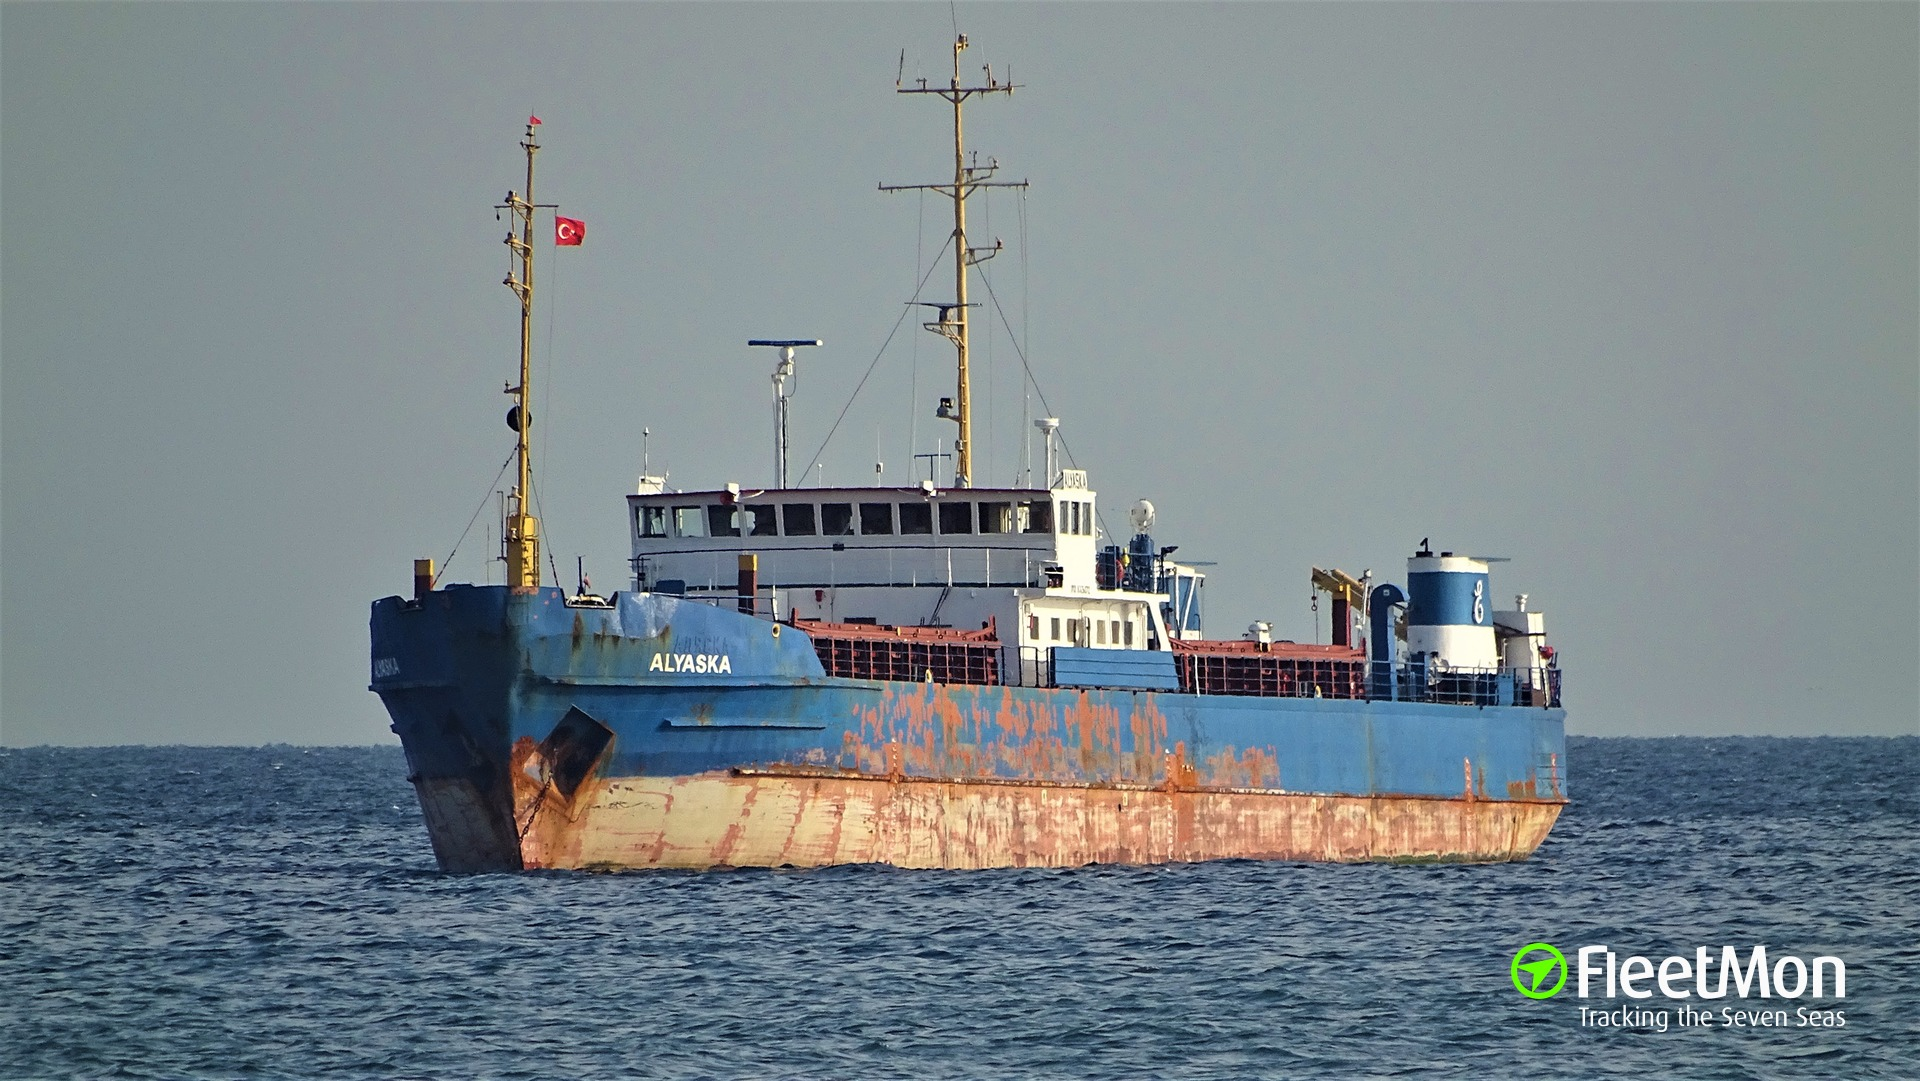 ALYASKA aground in Taganrog Bay, Azov sea